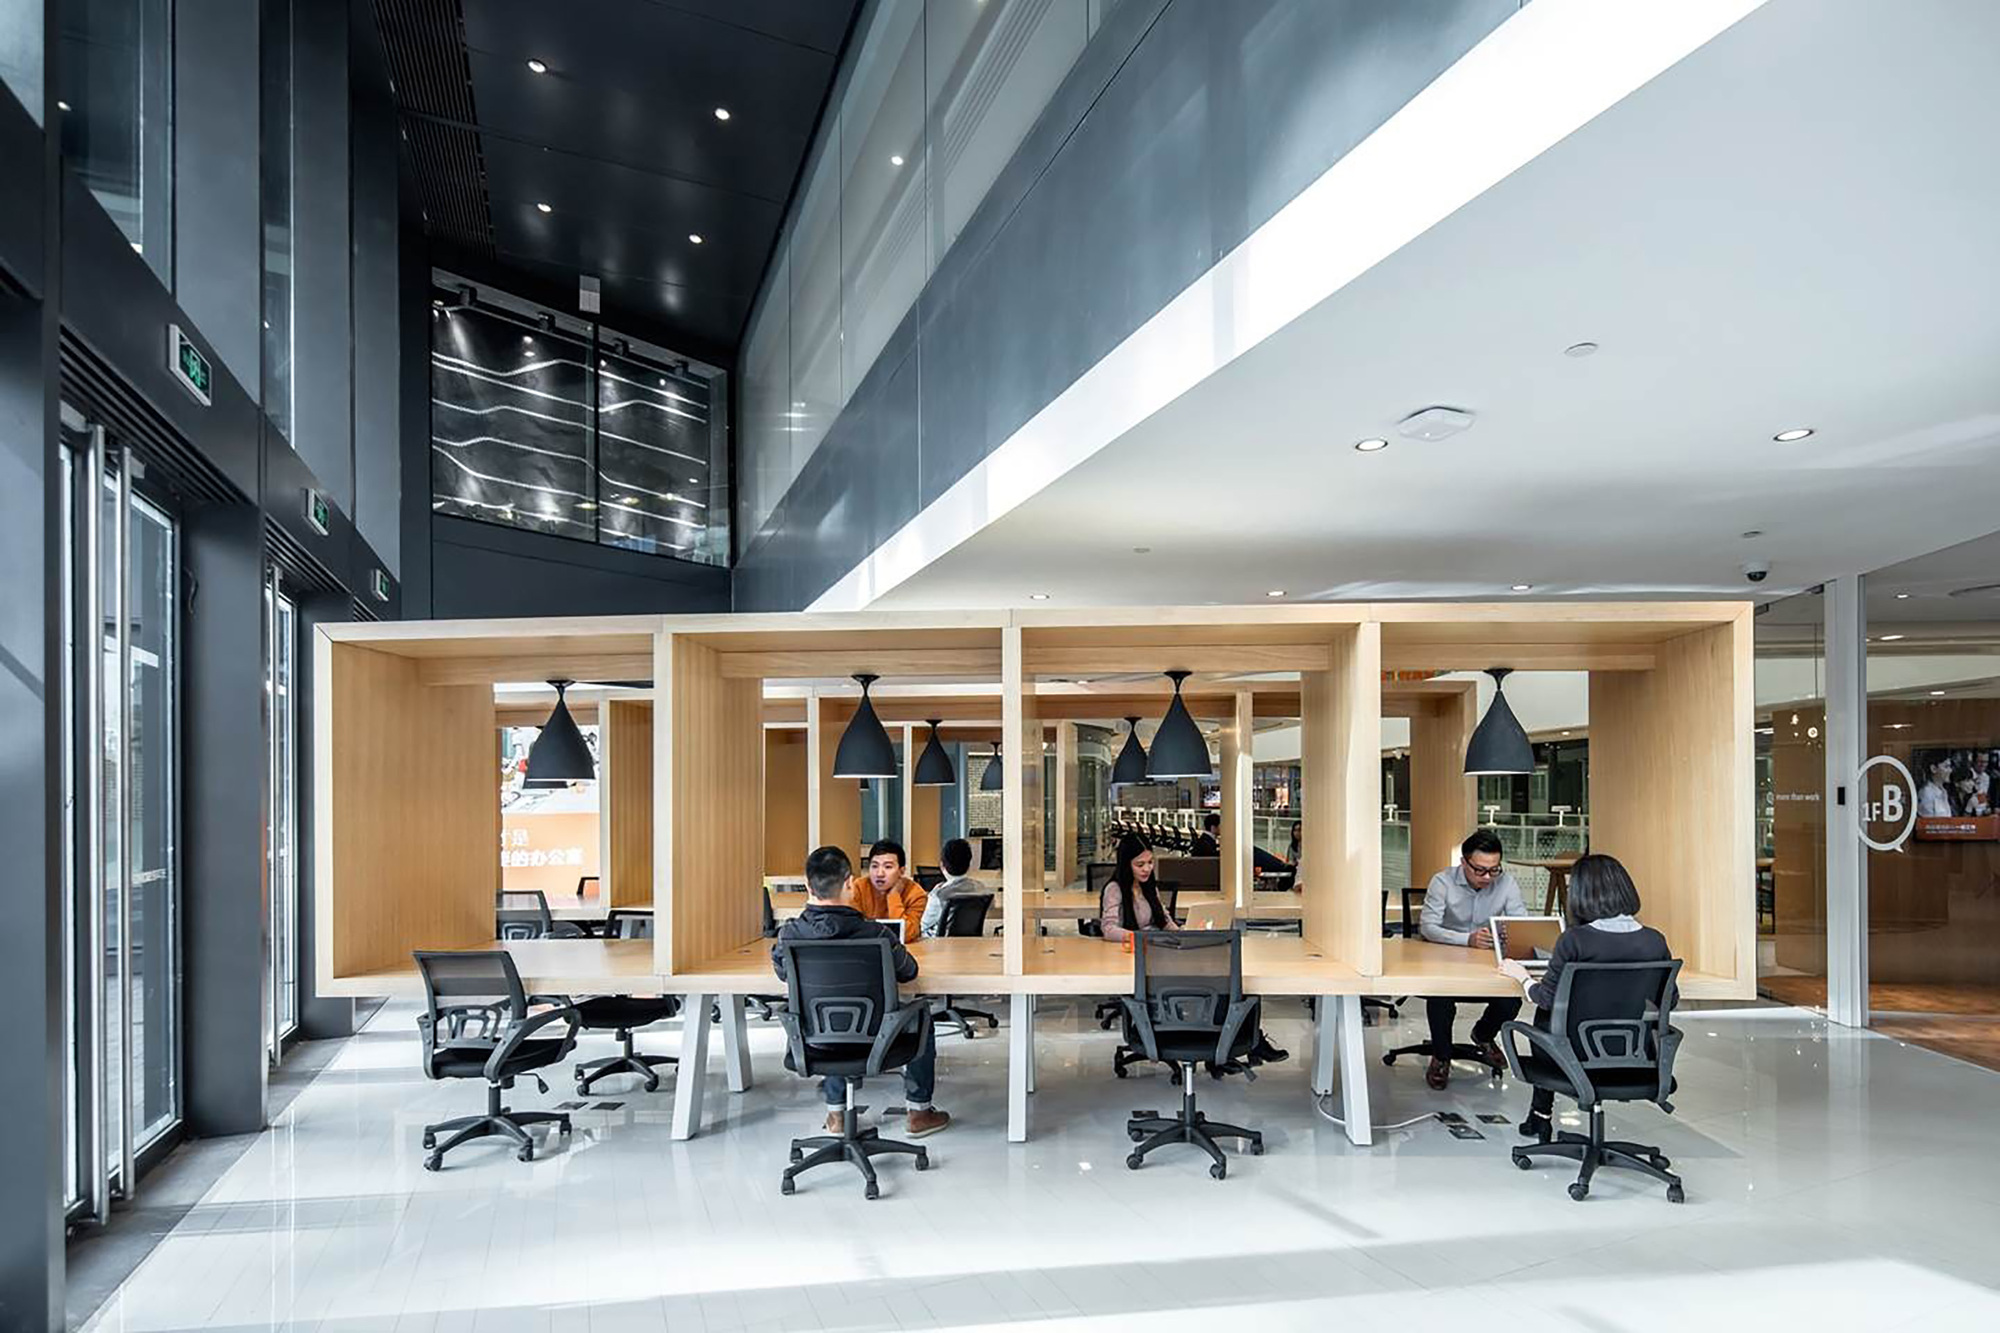 Guanghua road soho2 3q aim architecture archdaily for Space design group architects and interior designers